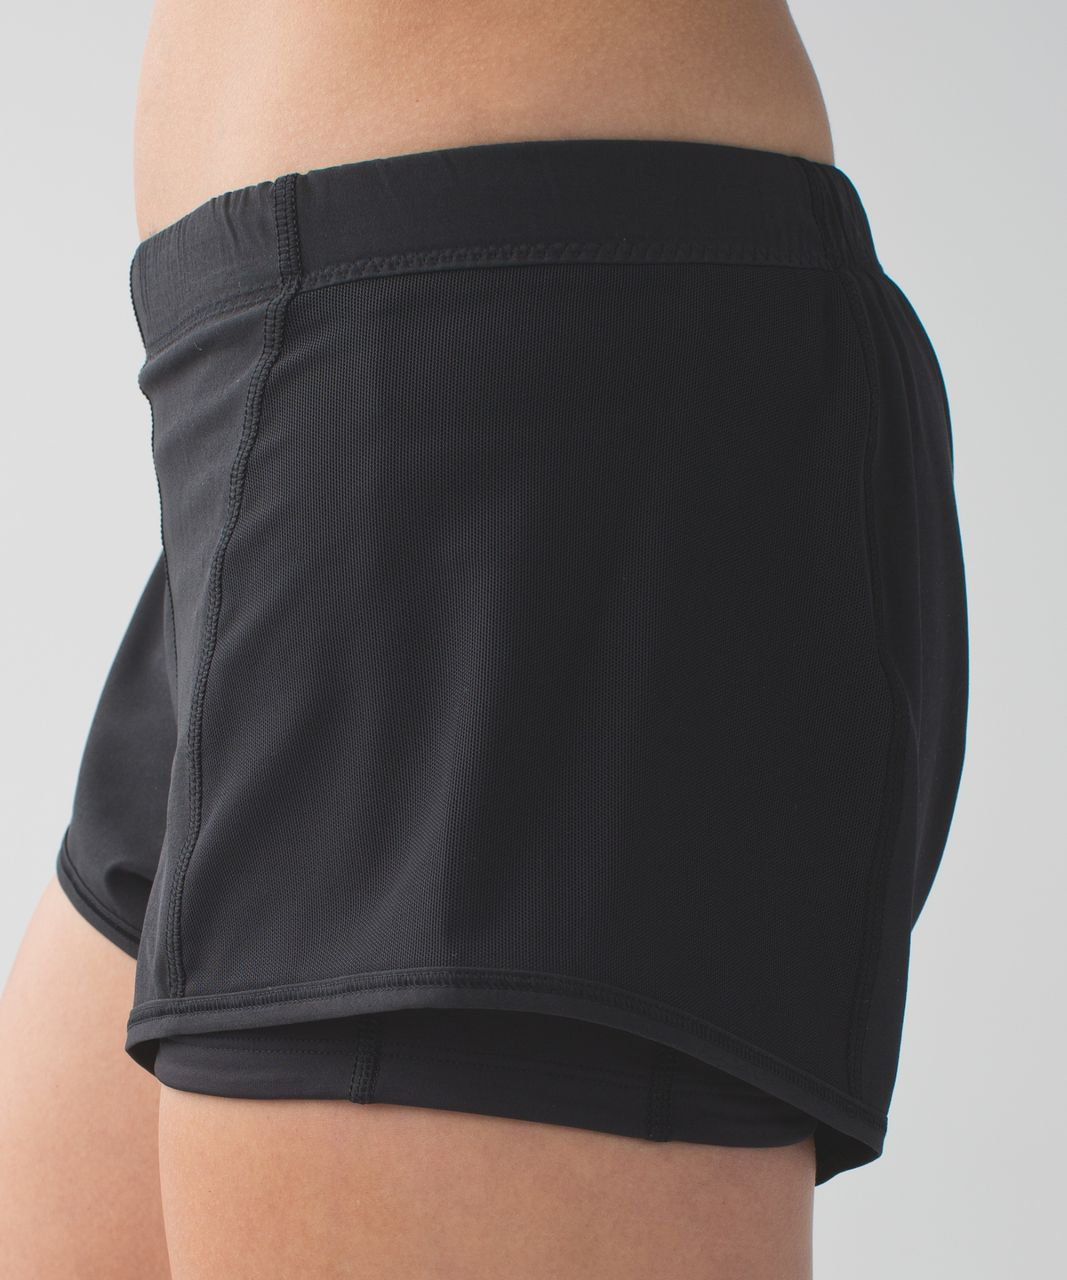 Lululemon Meshed Up Short - Black